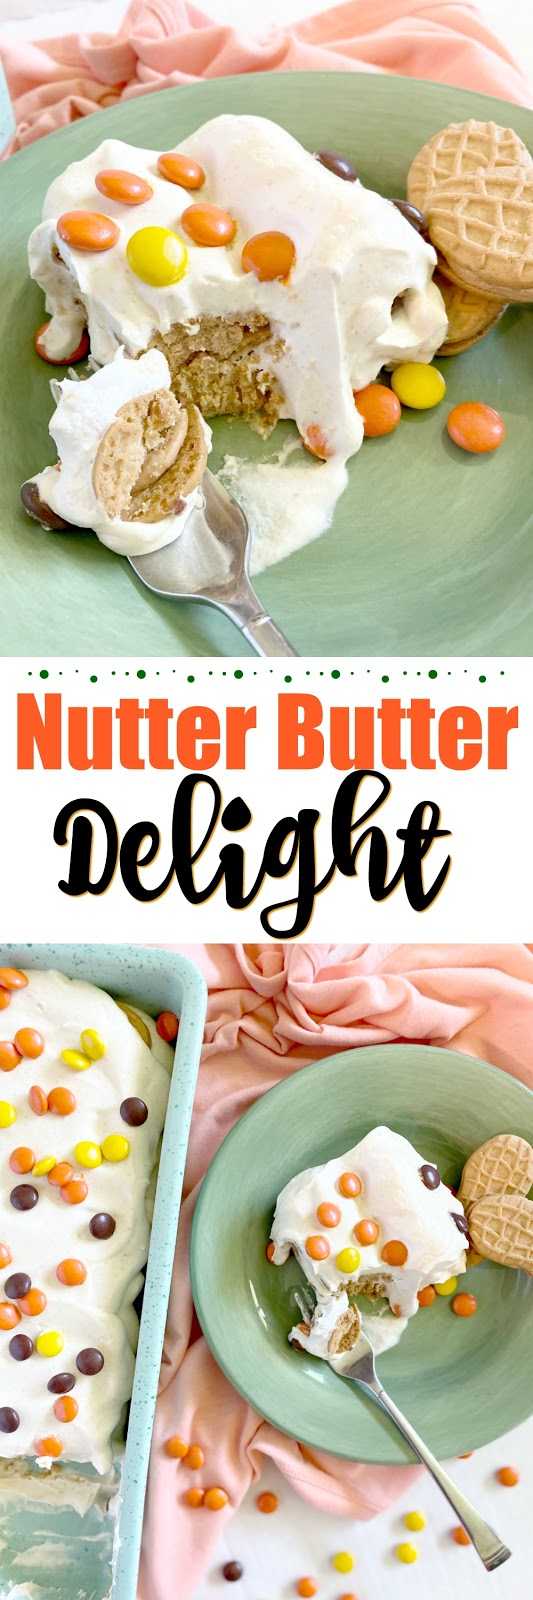 Nutter Butter Delight #sweetsavoryeats